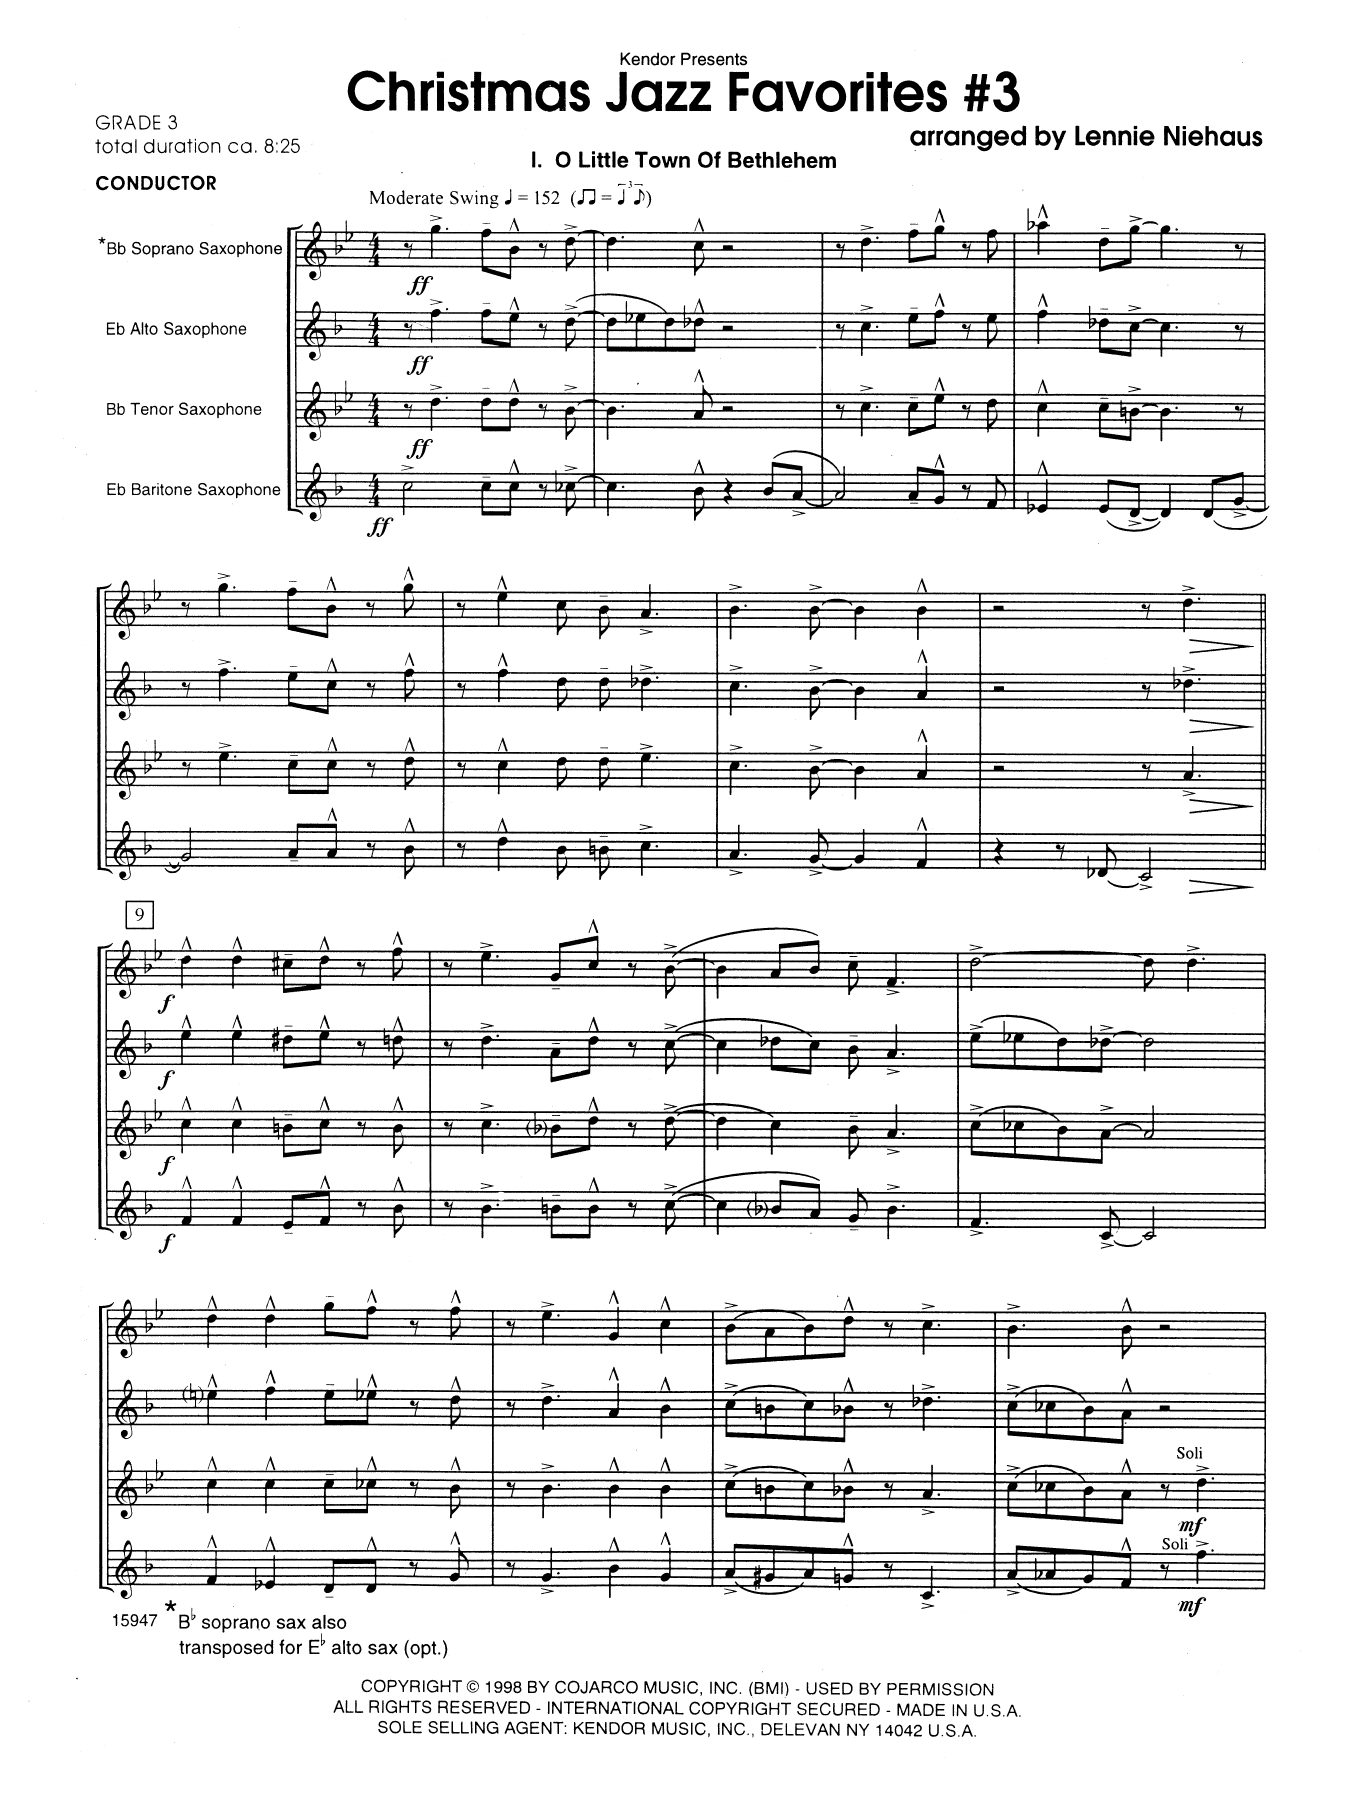 Christmas Jazz Favorites #3 (COMPLETE) sheet music for saxophone quartet by Lennie Niehaus. Score Image Preview.